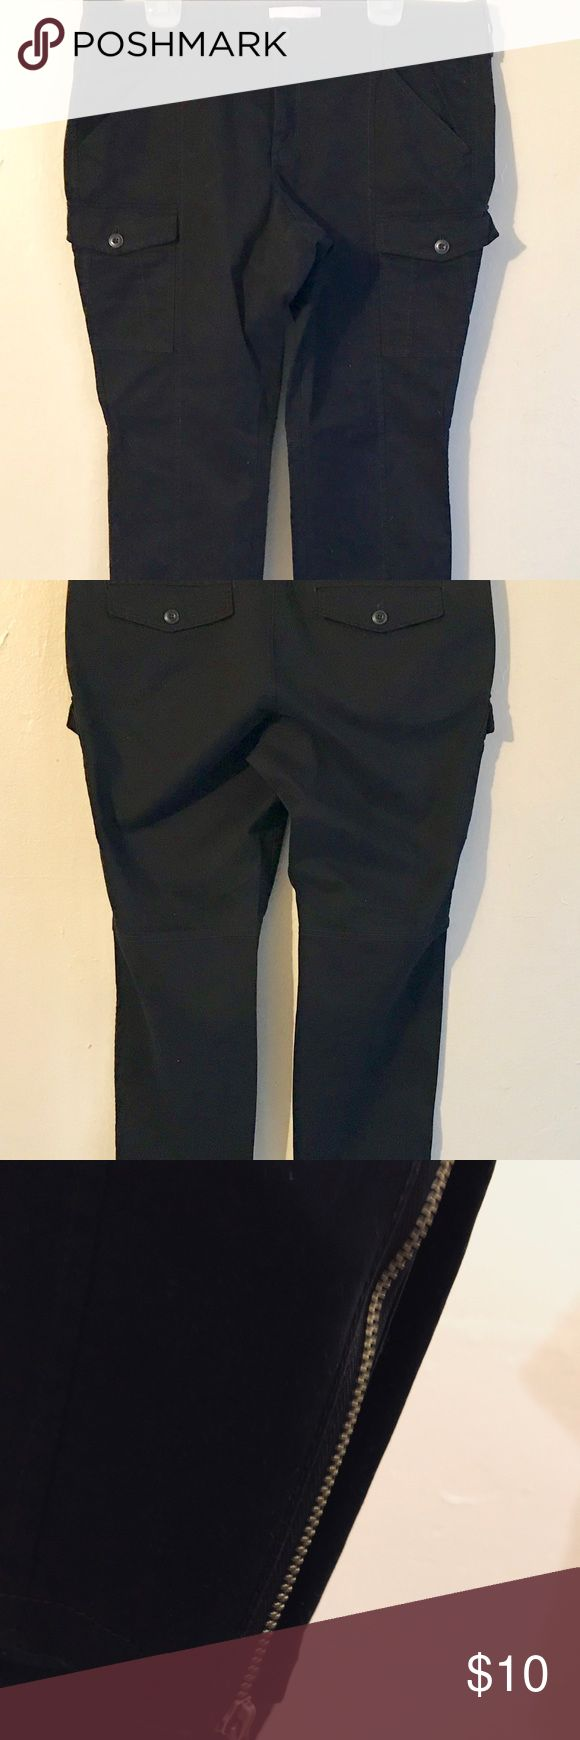 Black Skinny Cargo Pant Size 16M 2 front mid outer thigh with buttons and zip ankles. Cleaning out the closets ✨ Old Navy Pants Skinny